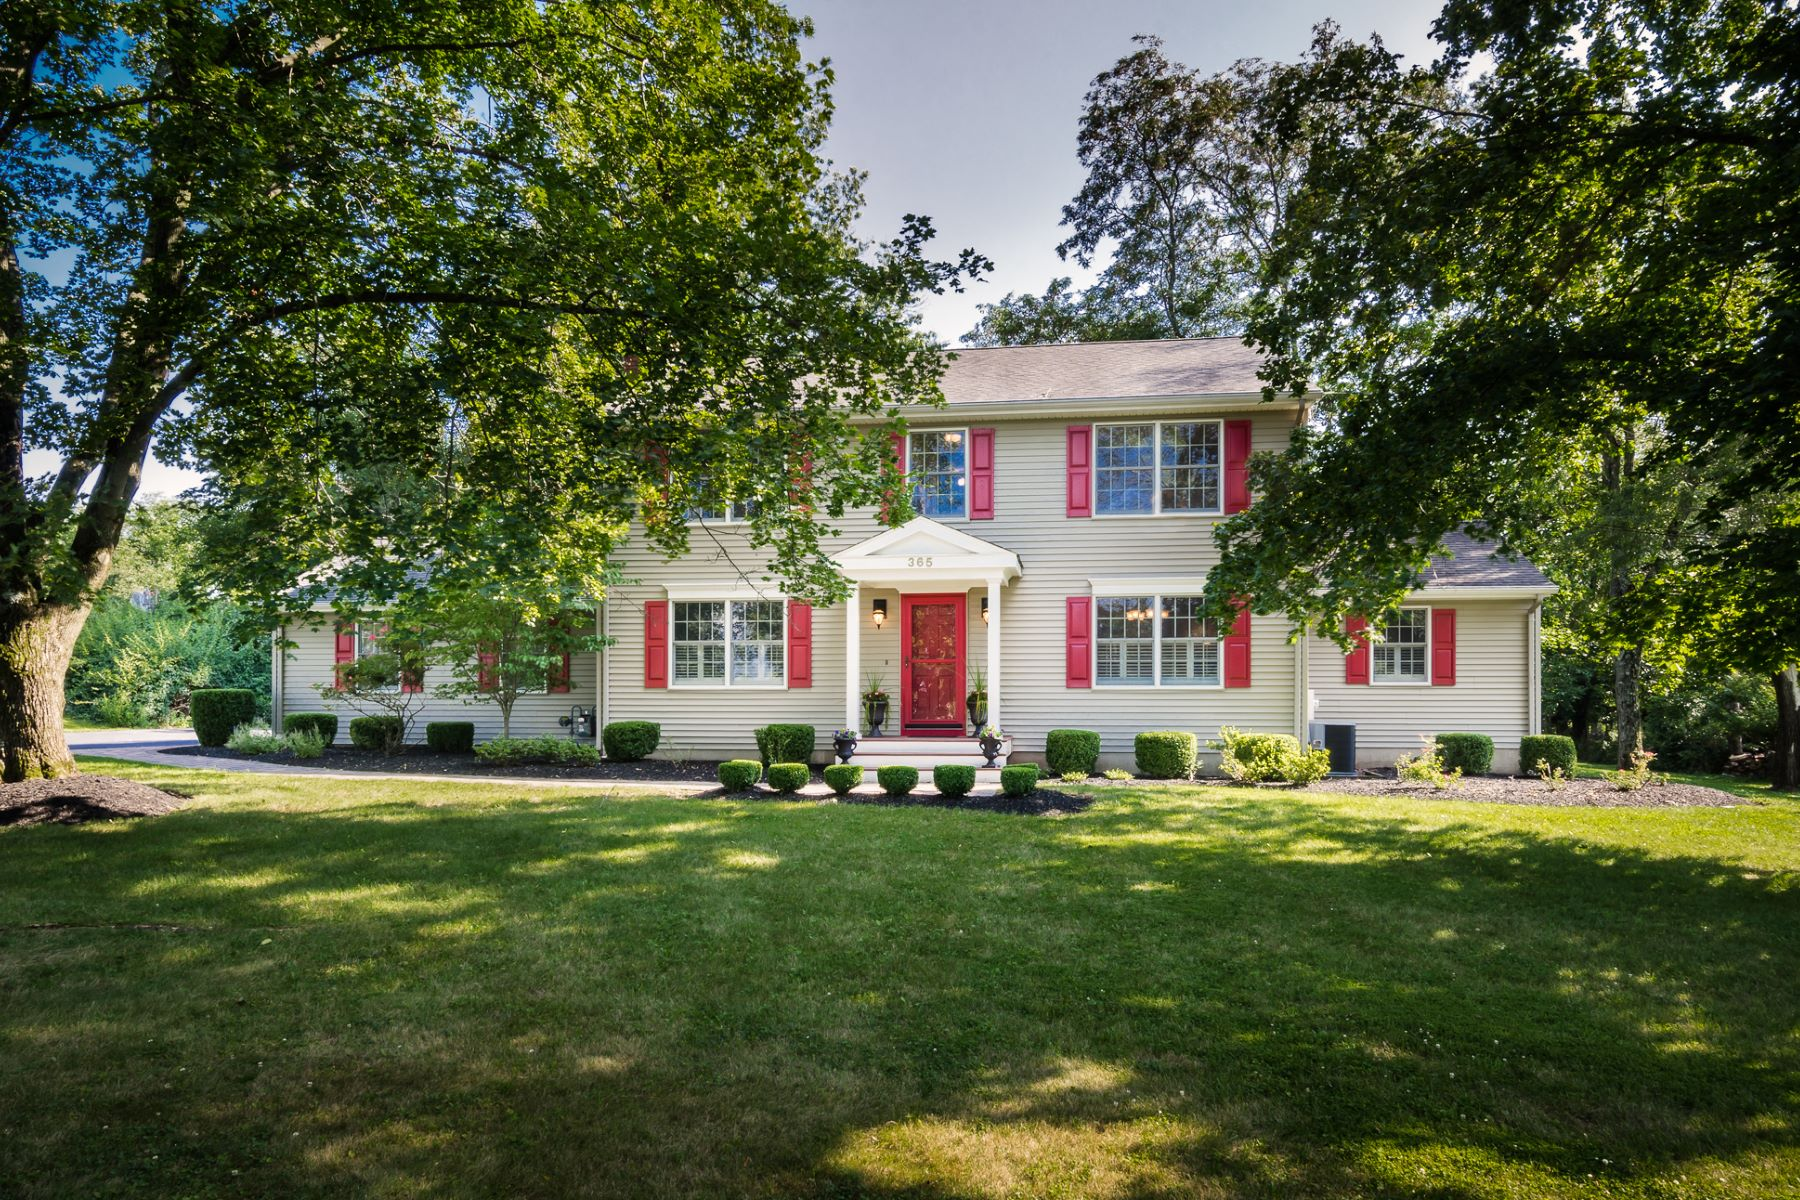 Maison unifamiliale pour l Vente à Move Right In And Feel At Home - Montgomery Township 365 Township Line Road Belle Mead, New Jersey 08502 États-Unis